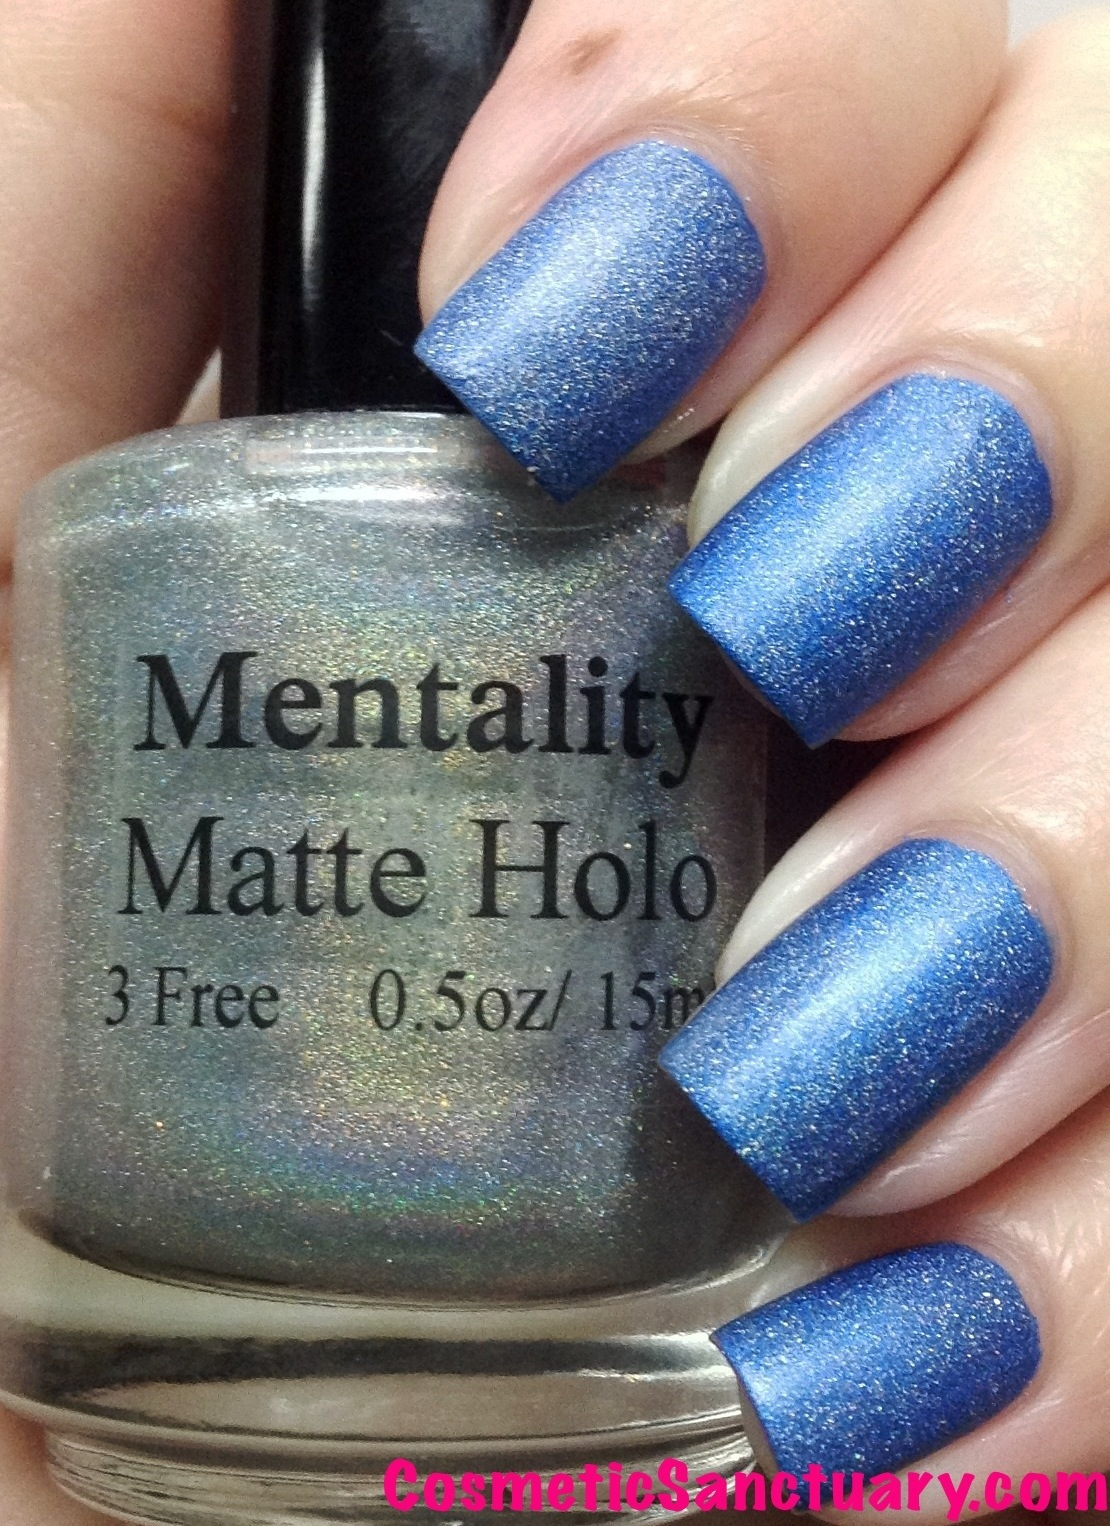 Mentality Nail Polish Ruffian and Matte Holo Top Coat Swatches and ...